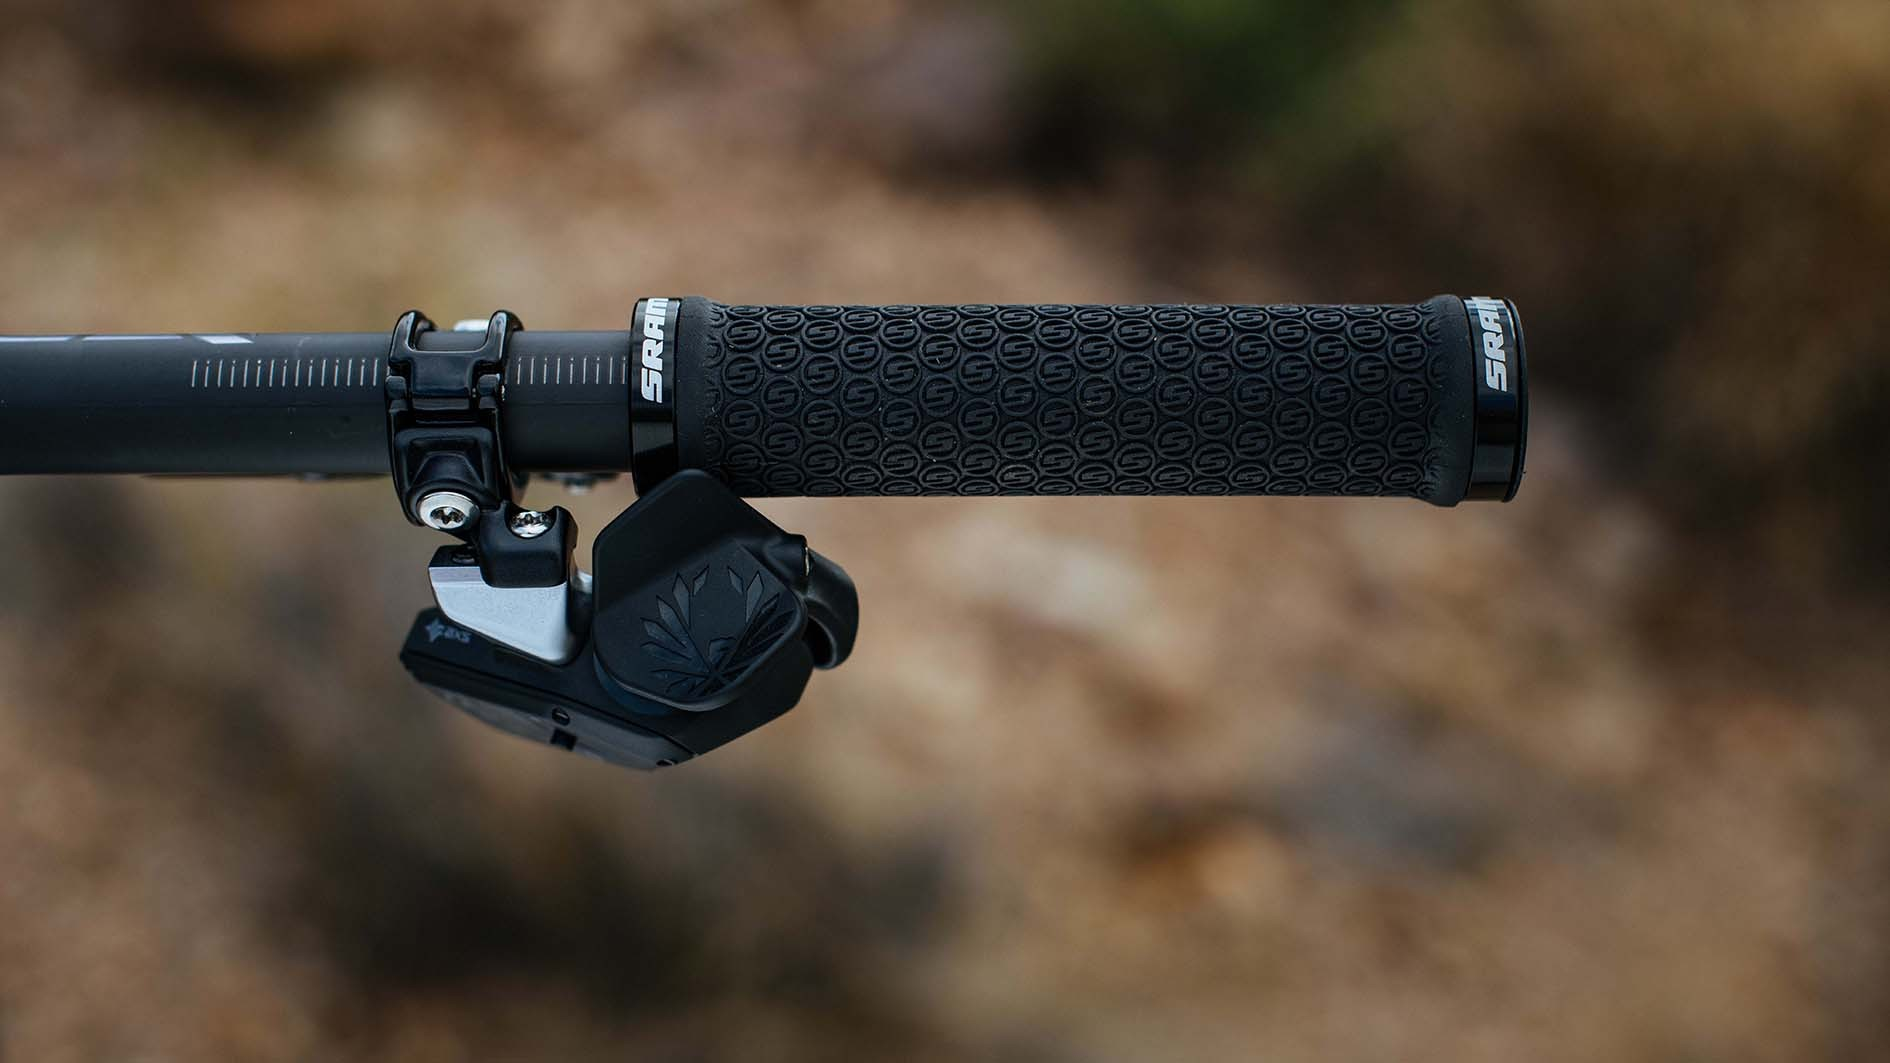 The new AXS shifter doesn't feel or look like a traditional shifter. It features three buttons (the sprint button is on the front, out of sight), all of which can be customised using the AXS app